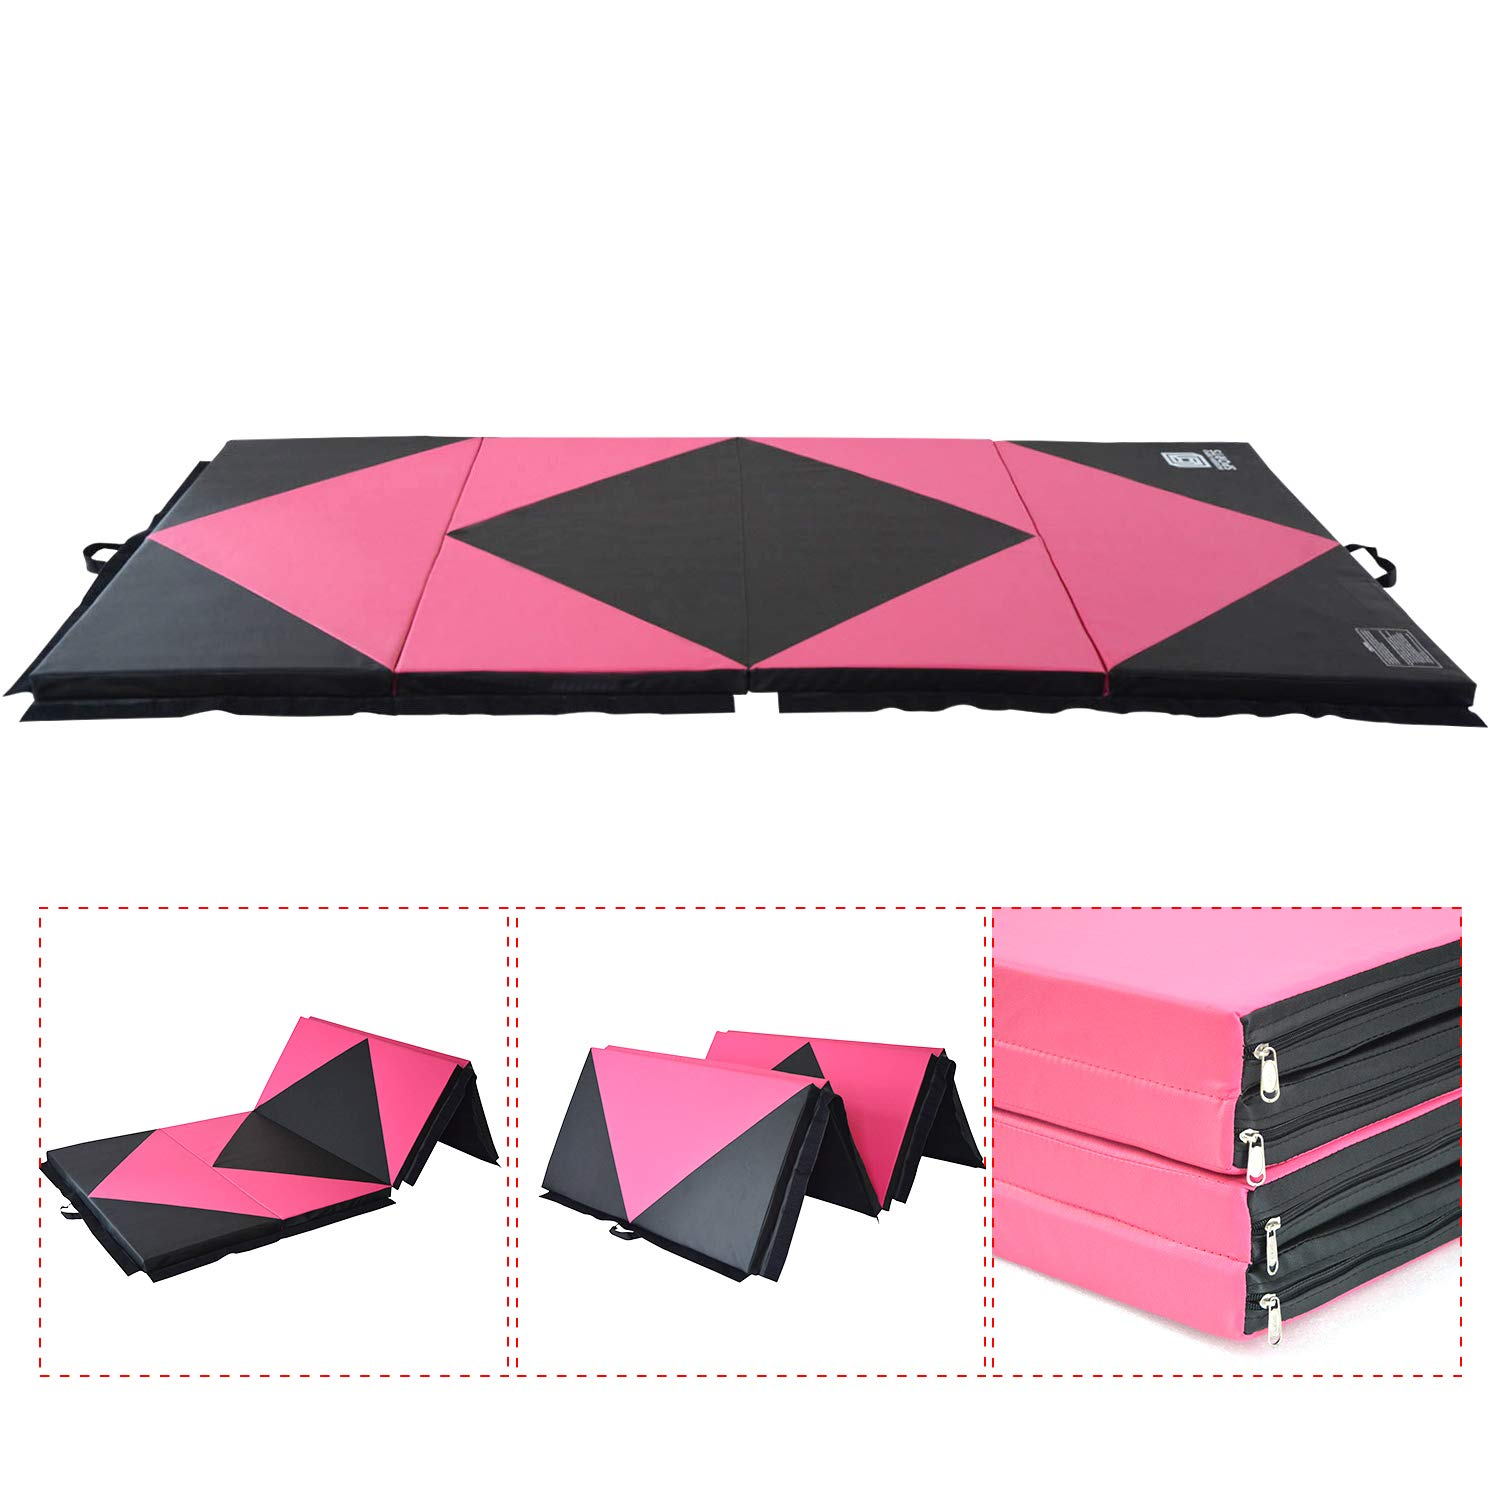 Modern-Depo Gymnastics Mat 4 Panels Folding 4'X10'X2'' With Handle, Hook Loop, Waterproof Cover, 100% EPE Core ( Pink and Black )